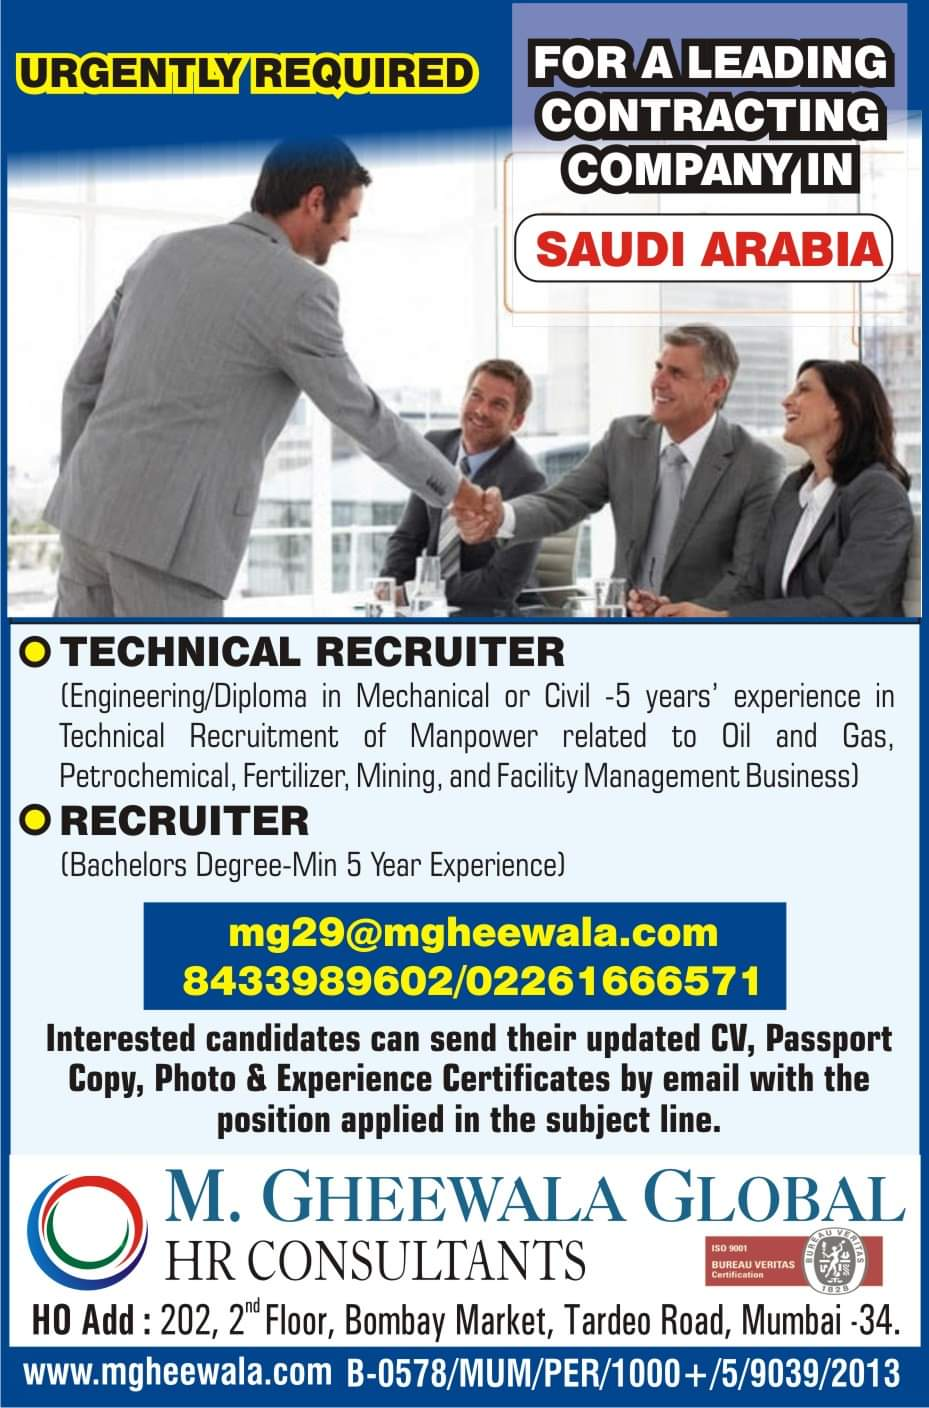 URGENTLY REQUIRED FOR A CONSTRUCTION COMPANY-SAUDI ARABIA